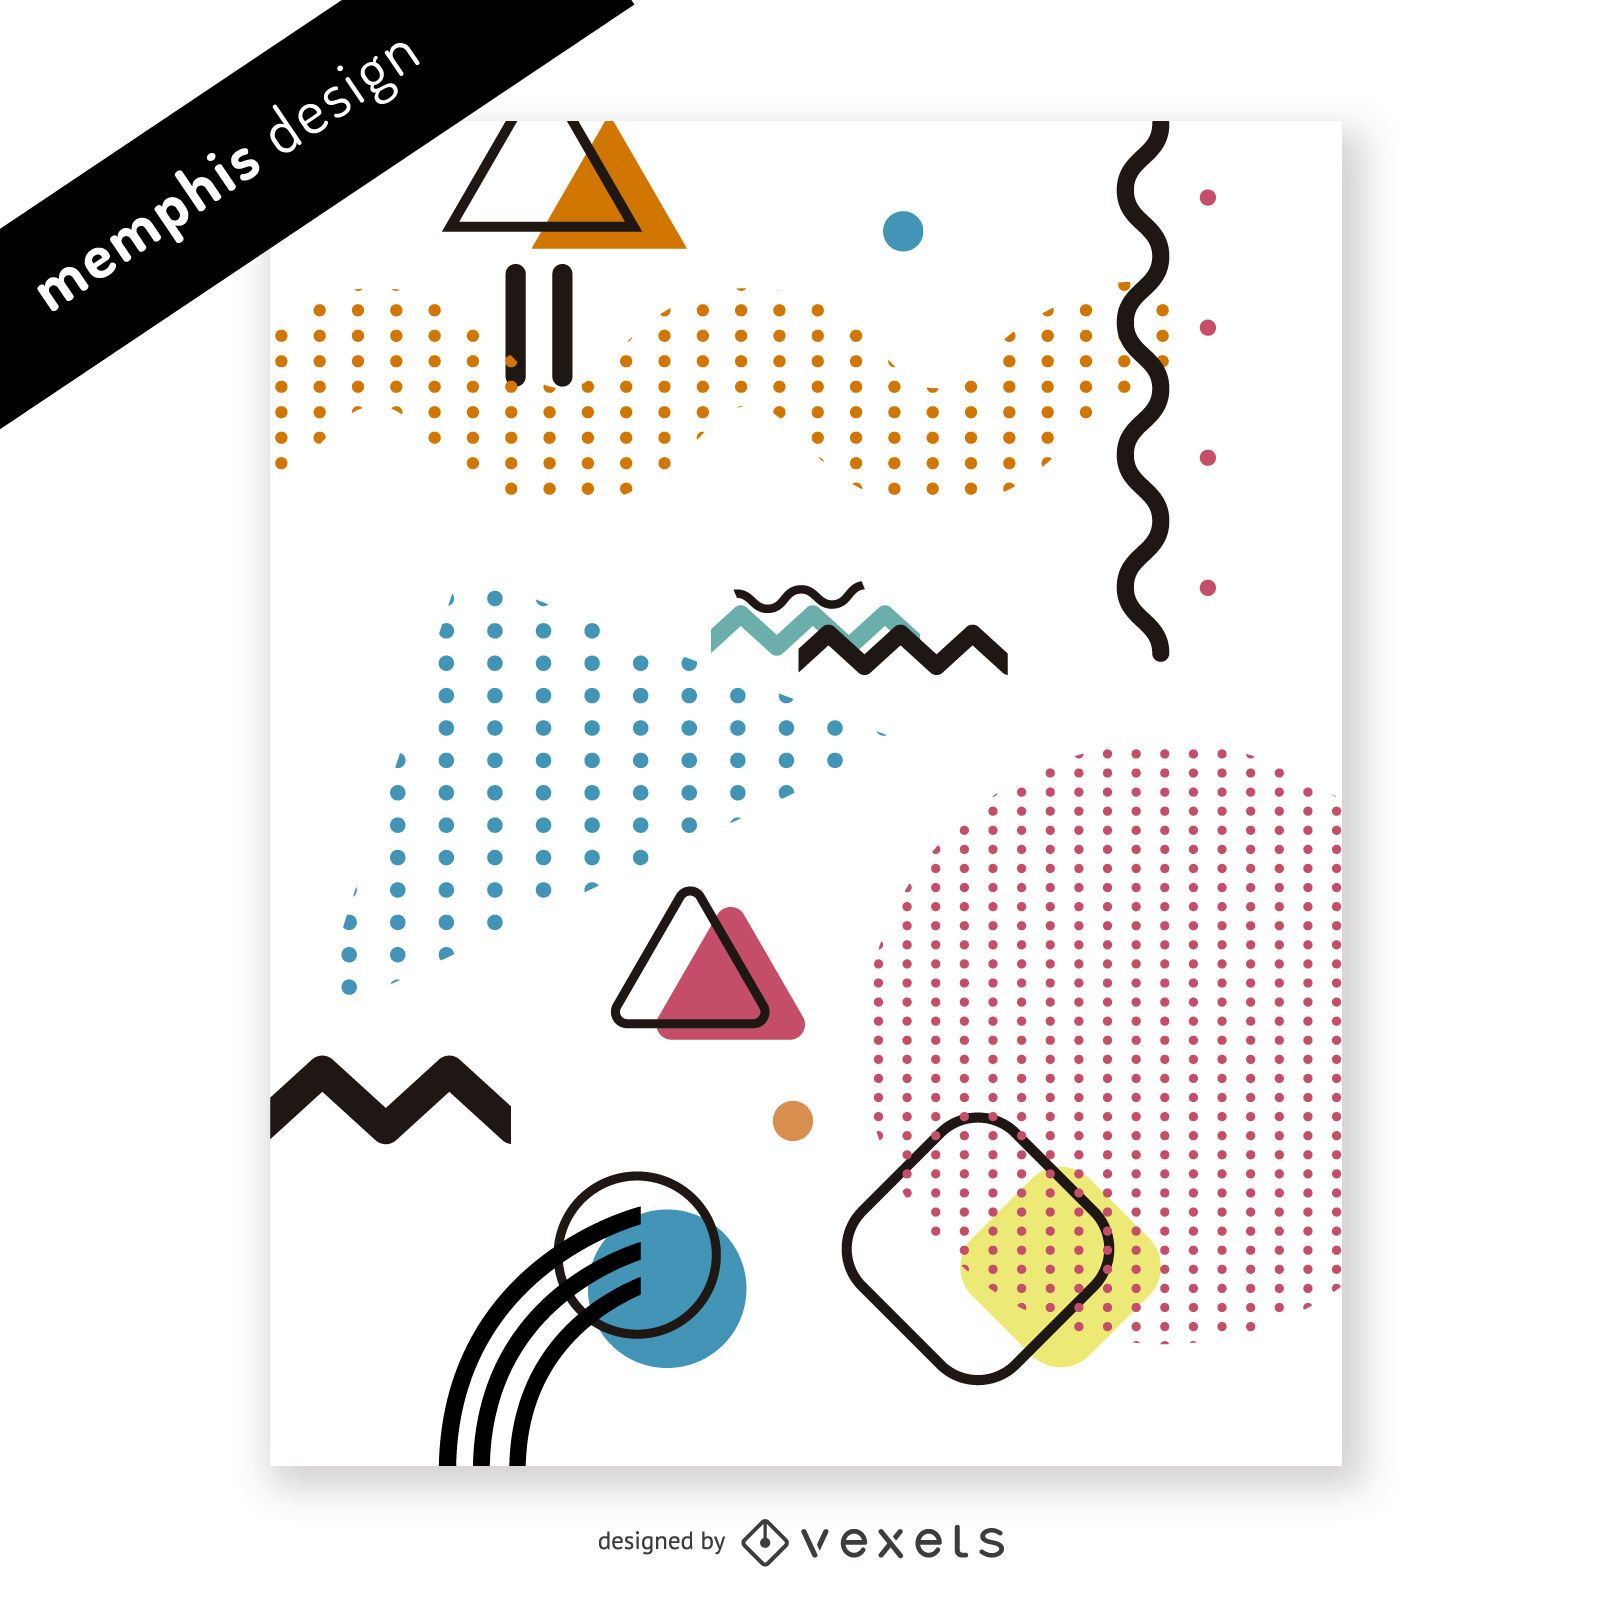 Bright memphis design with shapes and dots